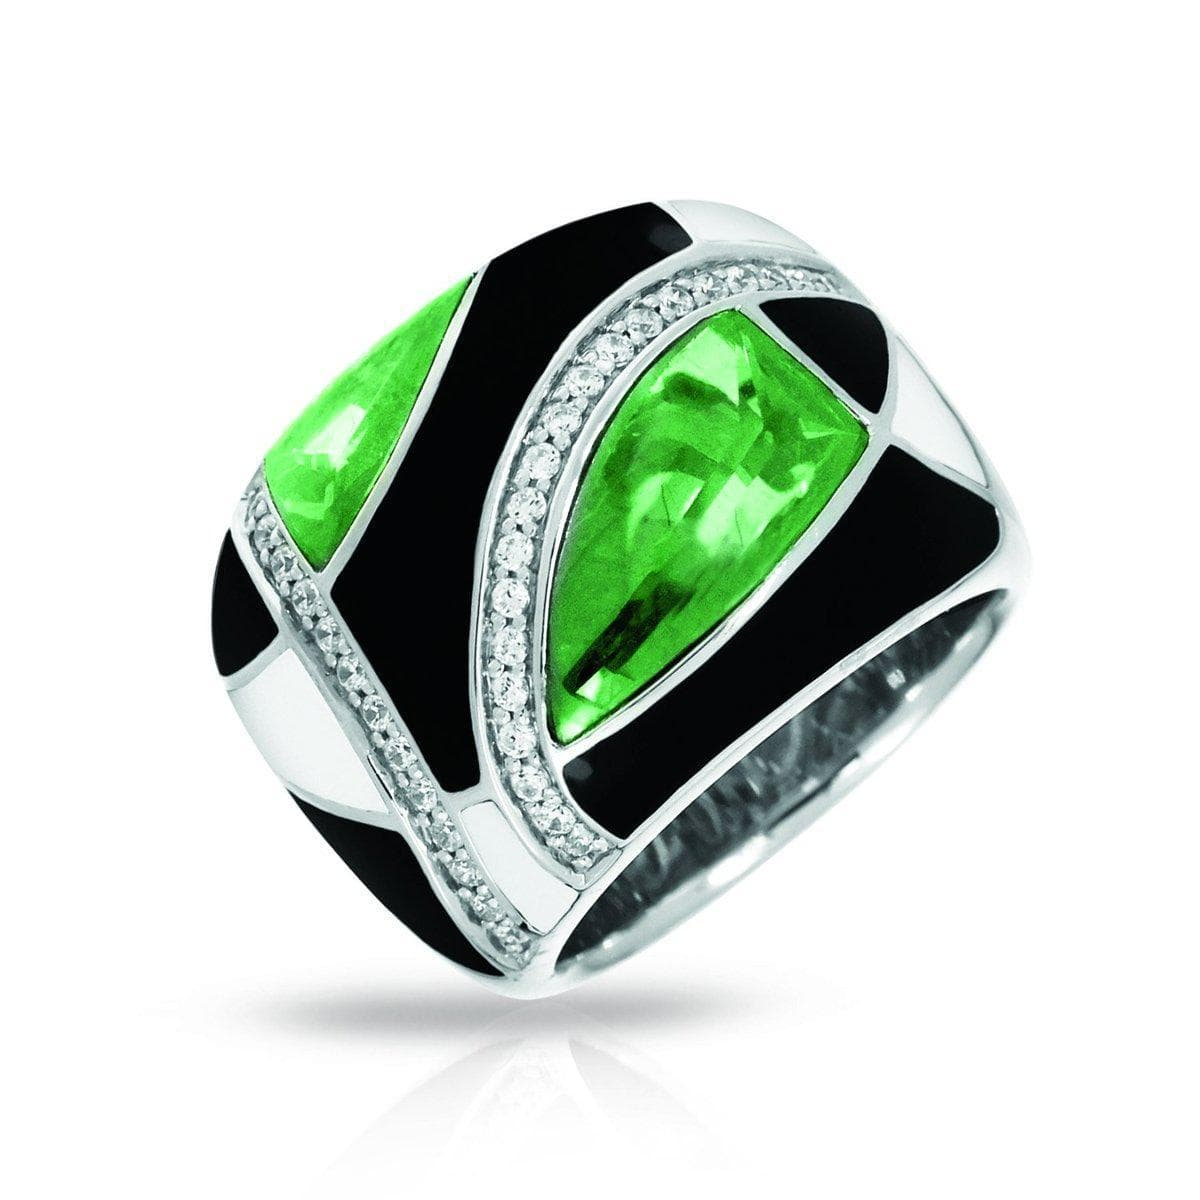 Tango Emerald Ring-Belle Etoile-Renee Taylor Gallery